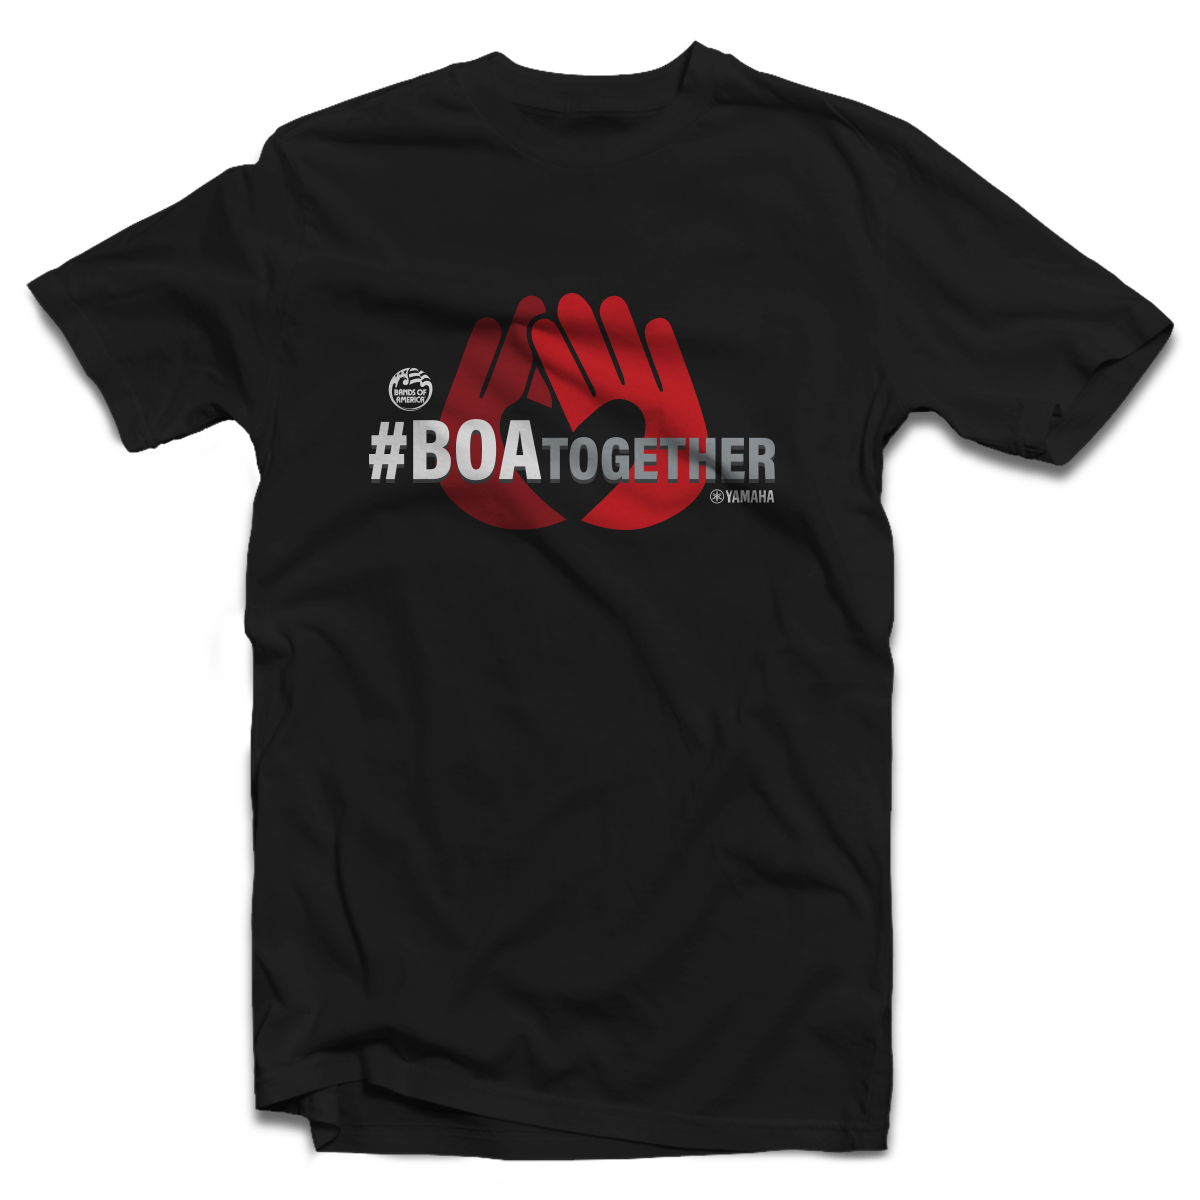 Limited Edition: #BOATogether T-shirt